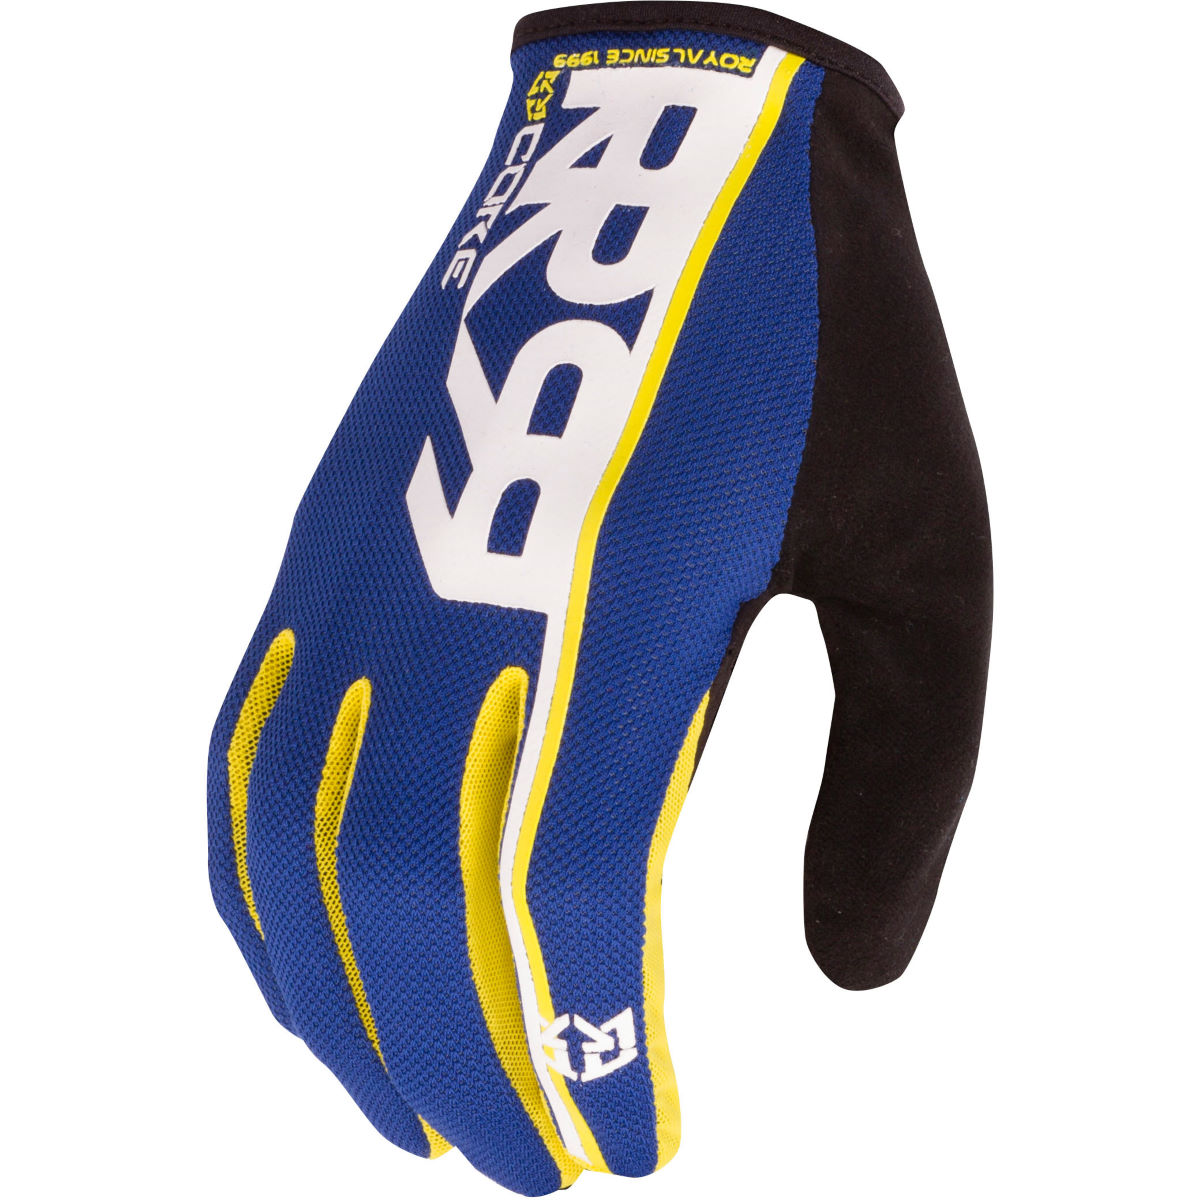 Royal Core Glove - Guantes largos